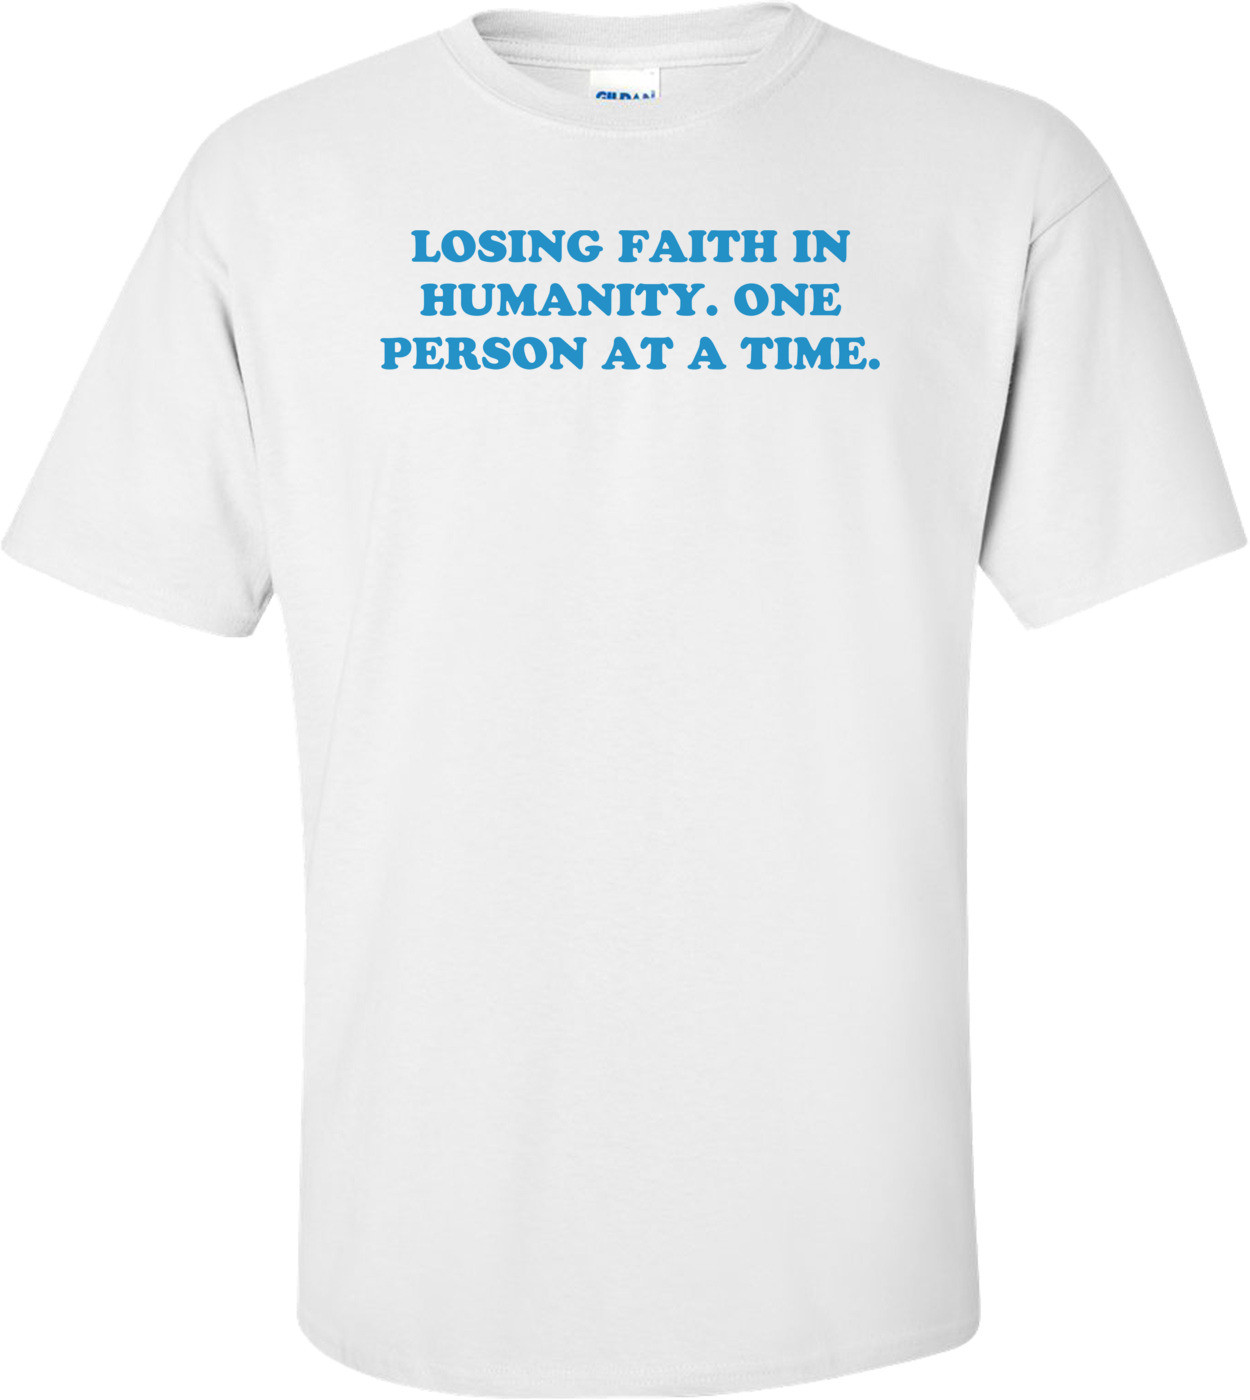 LOSING FAITH IN HUMANITY. ONE PERSON AT A TIME. Shirt